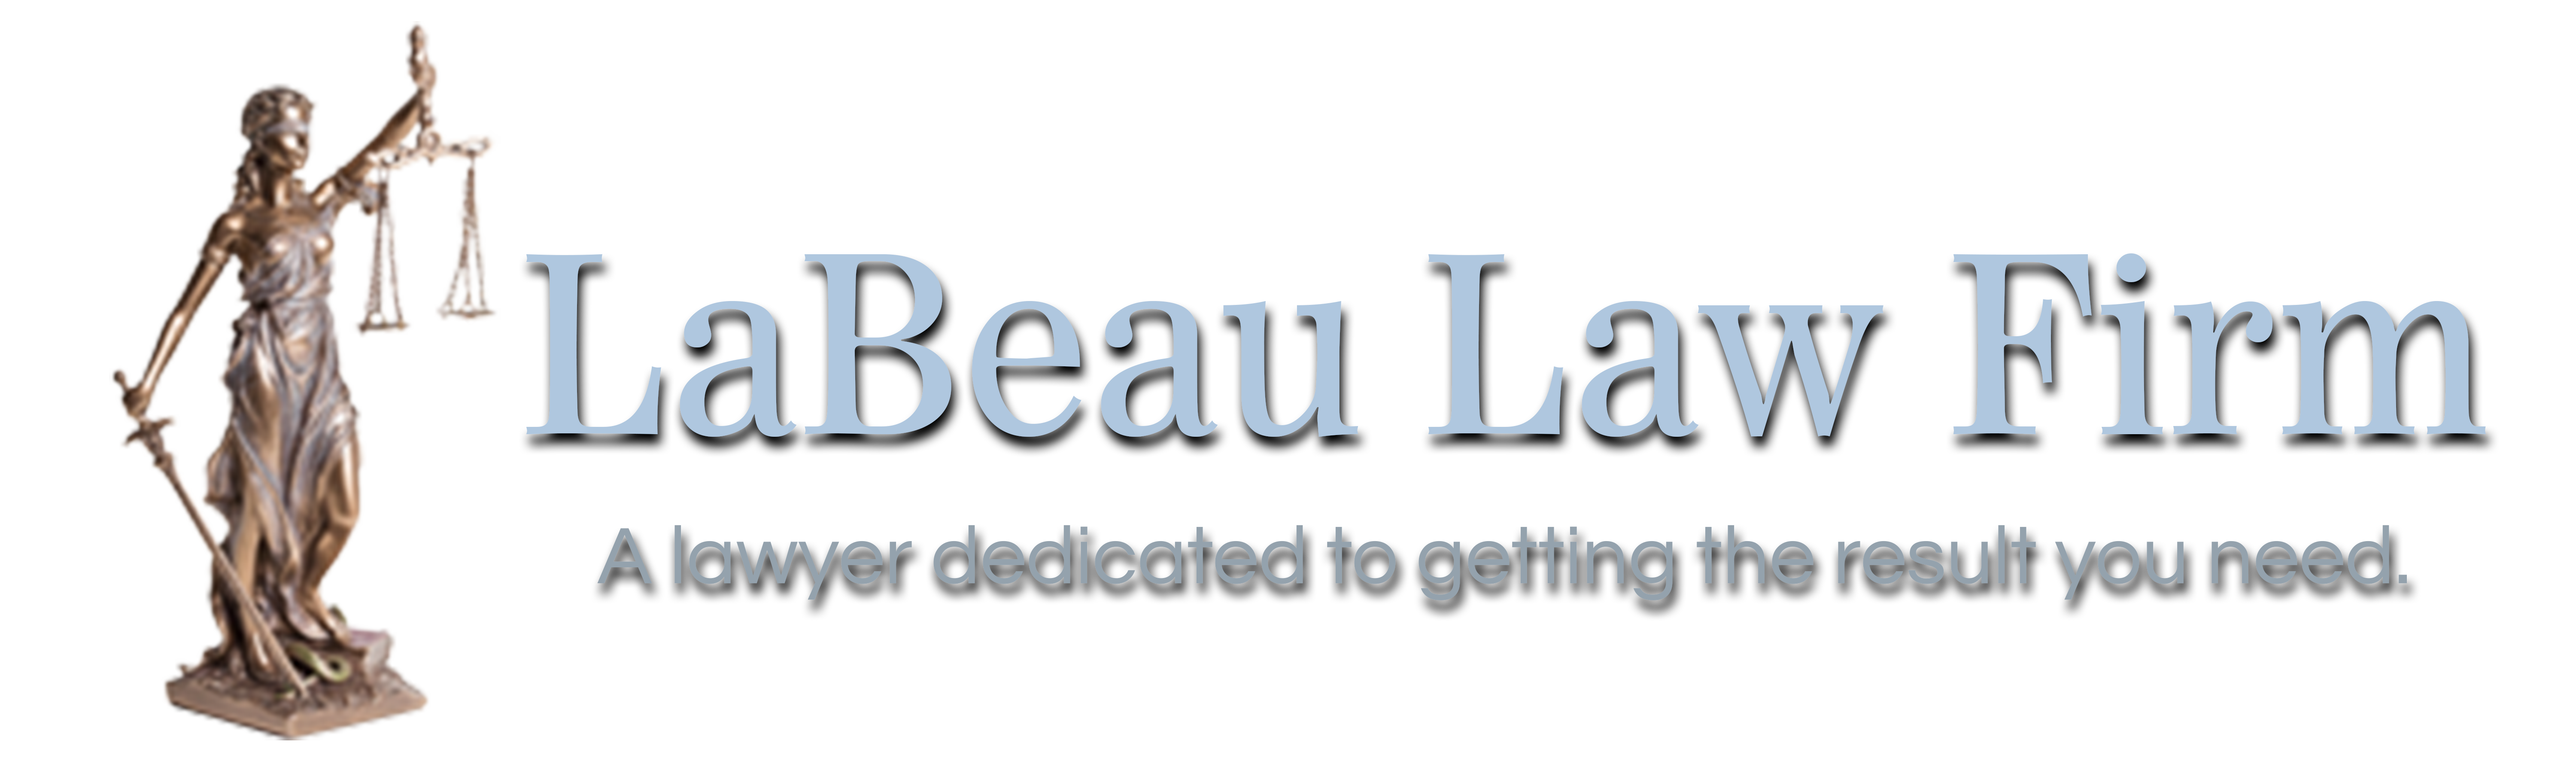 Family Law, Personal Injury: Billings, MT | LaBeau Law Firm